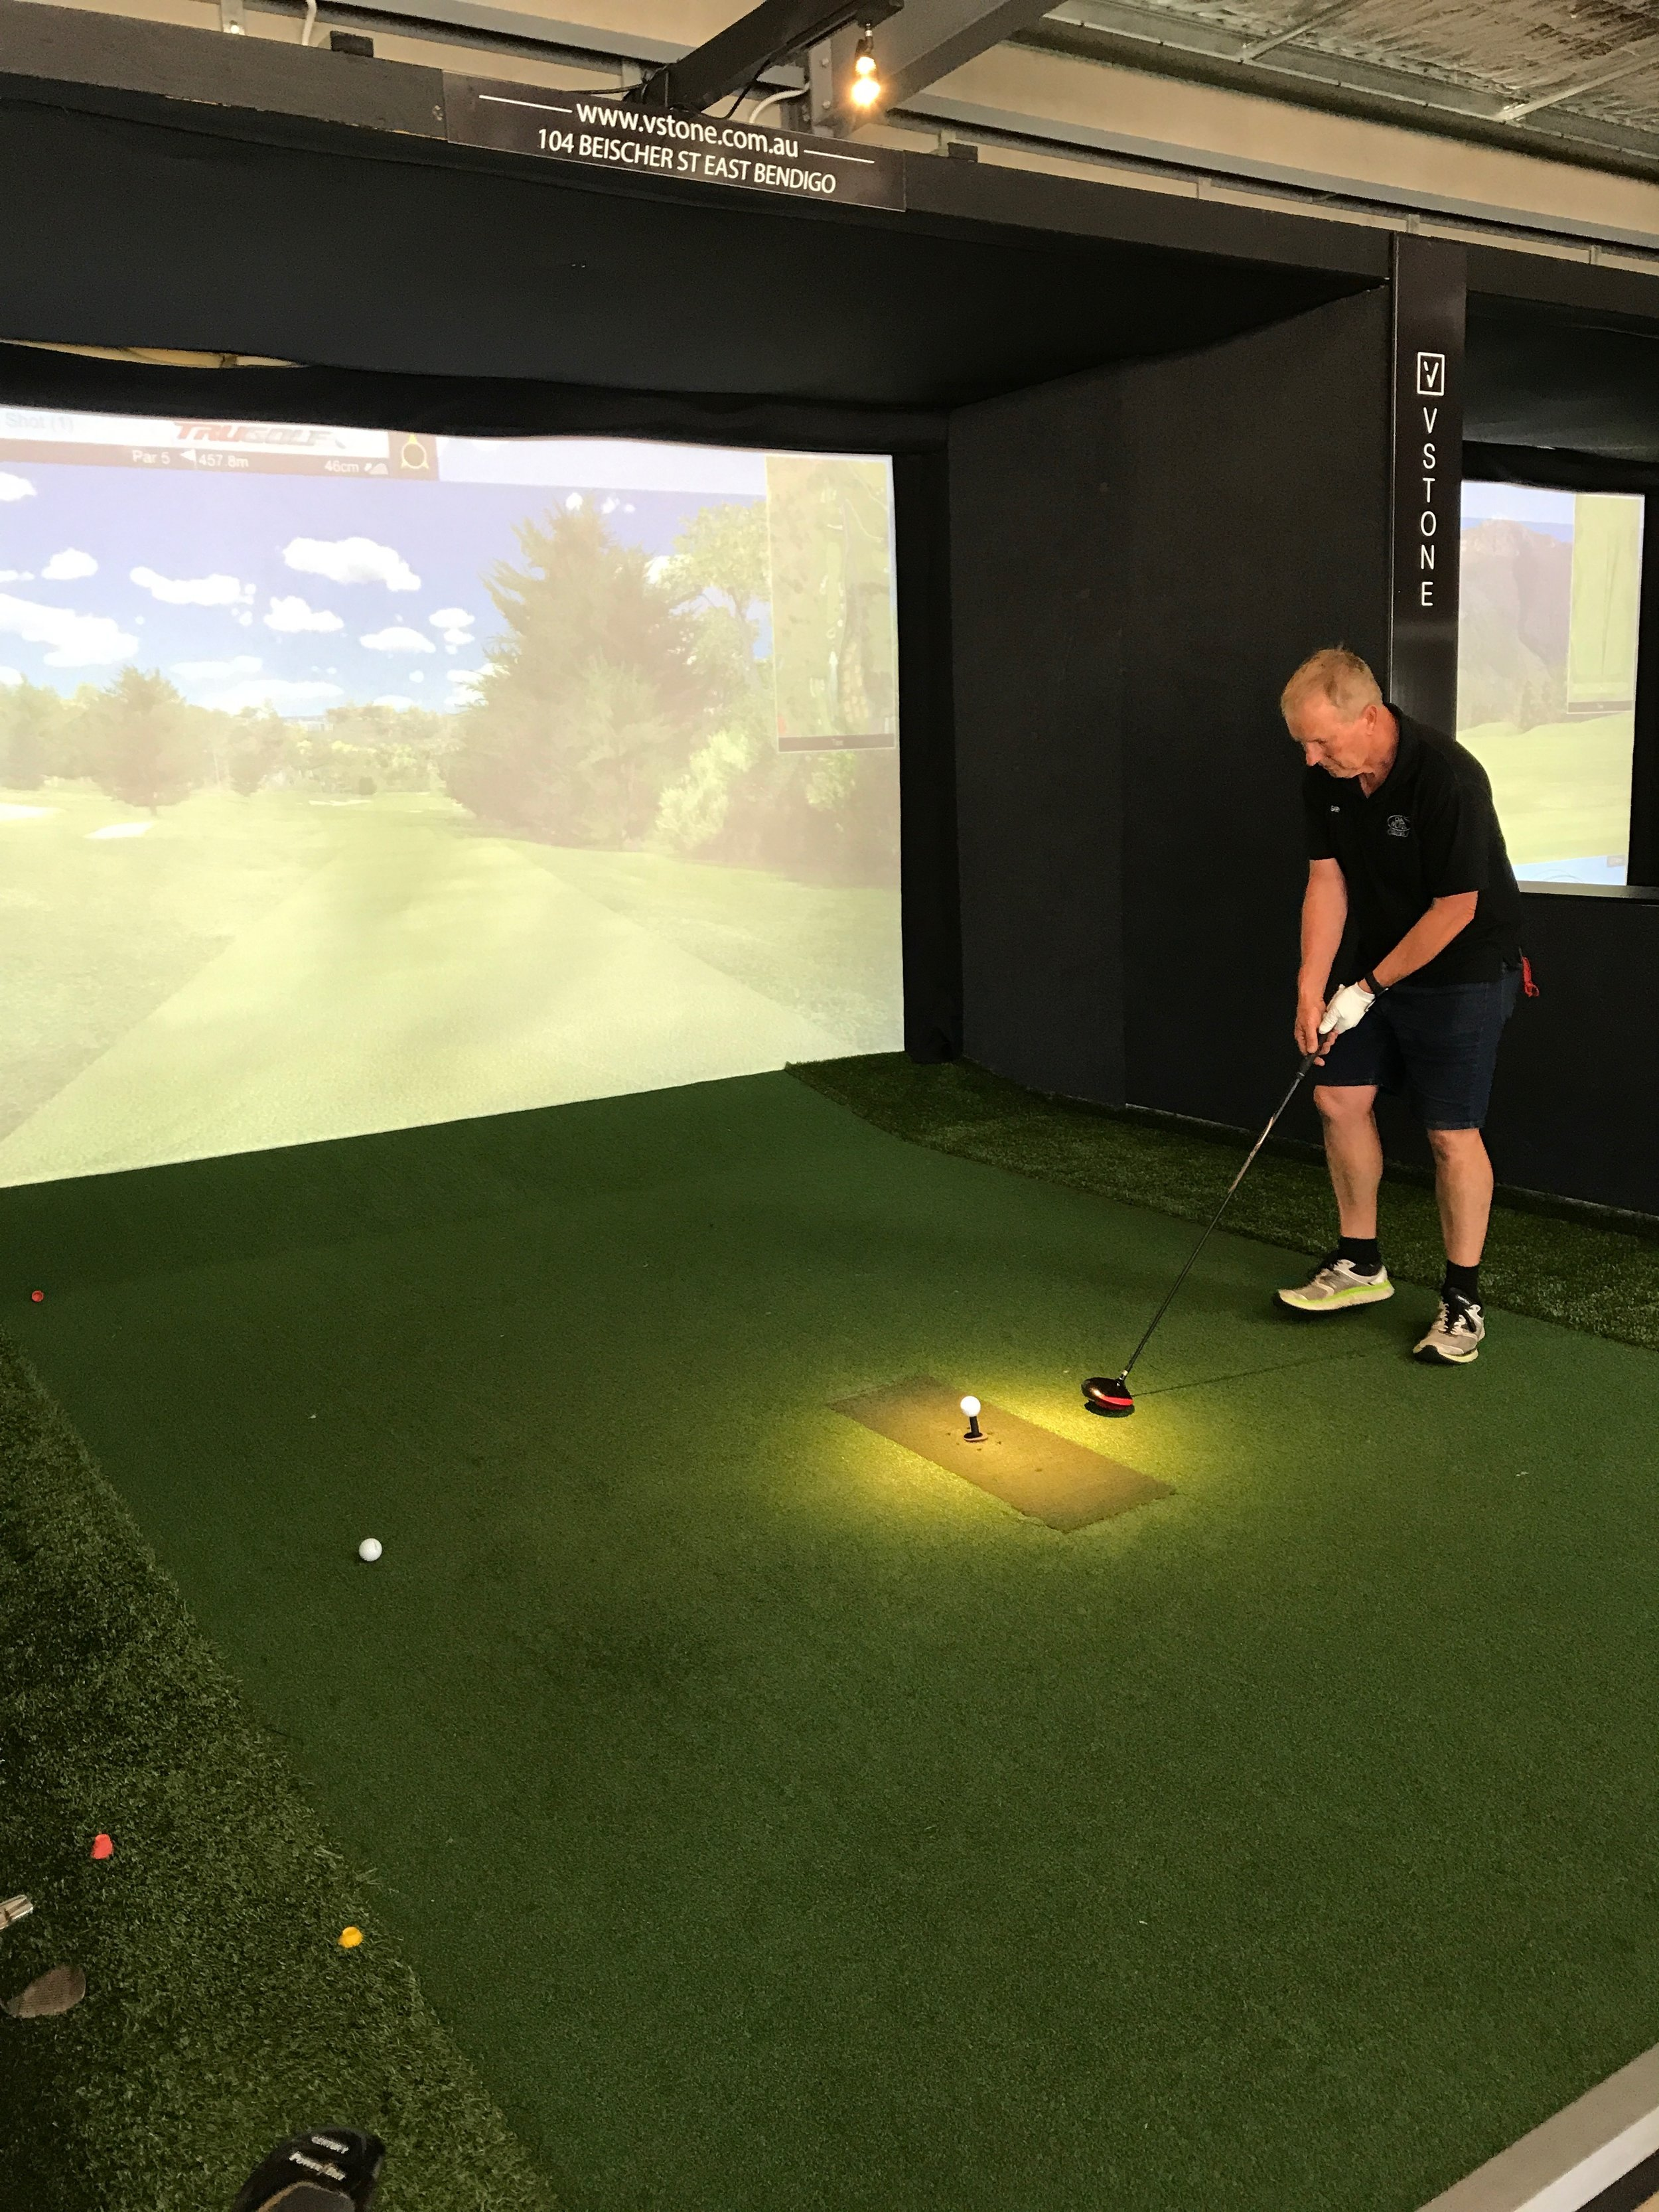 Me (Gary) doing a practice drive. You can see the fairway on the screen.